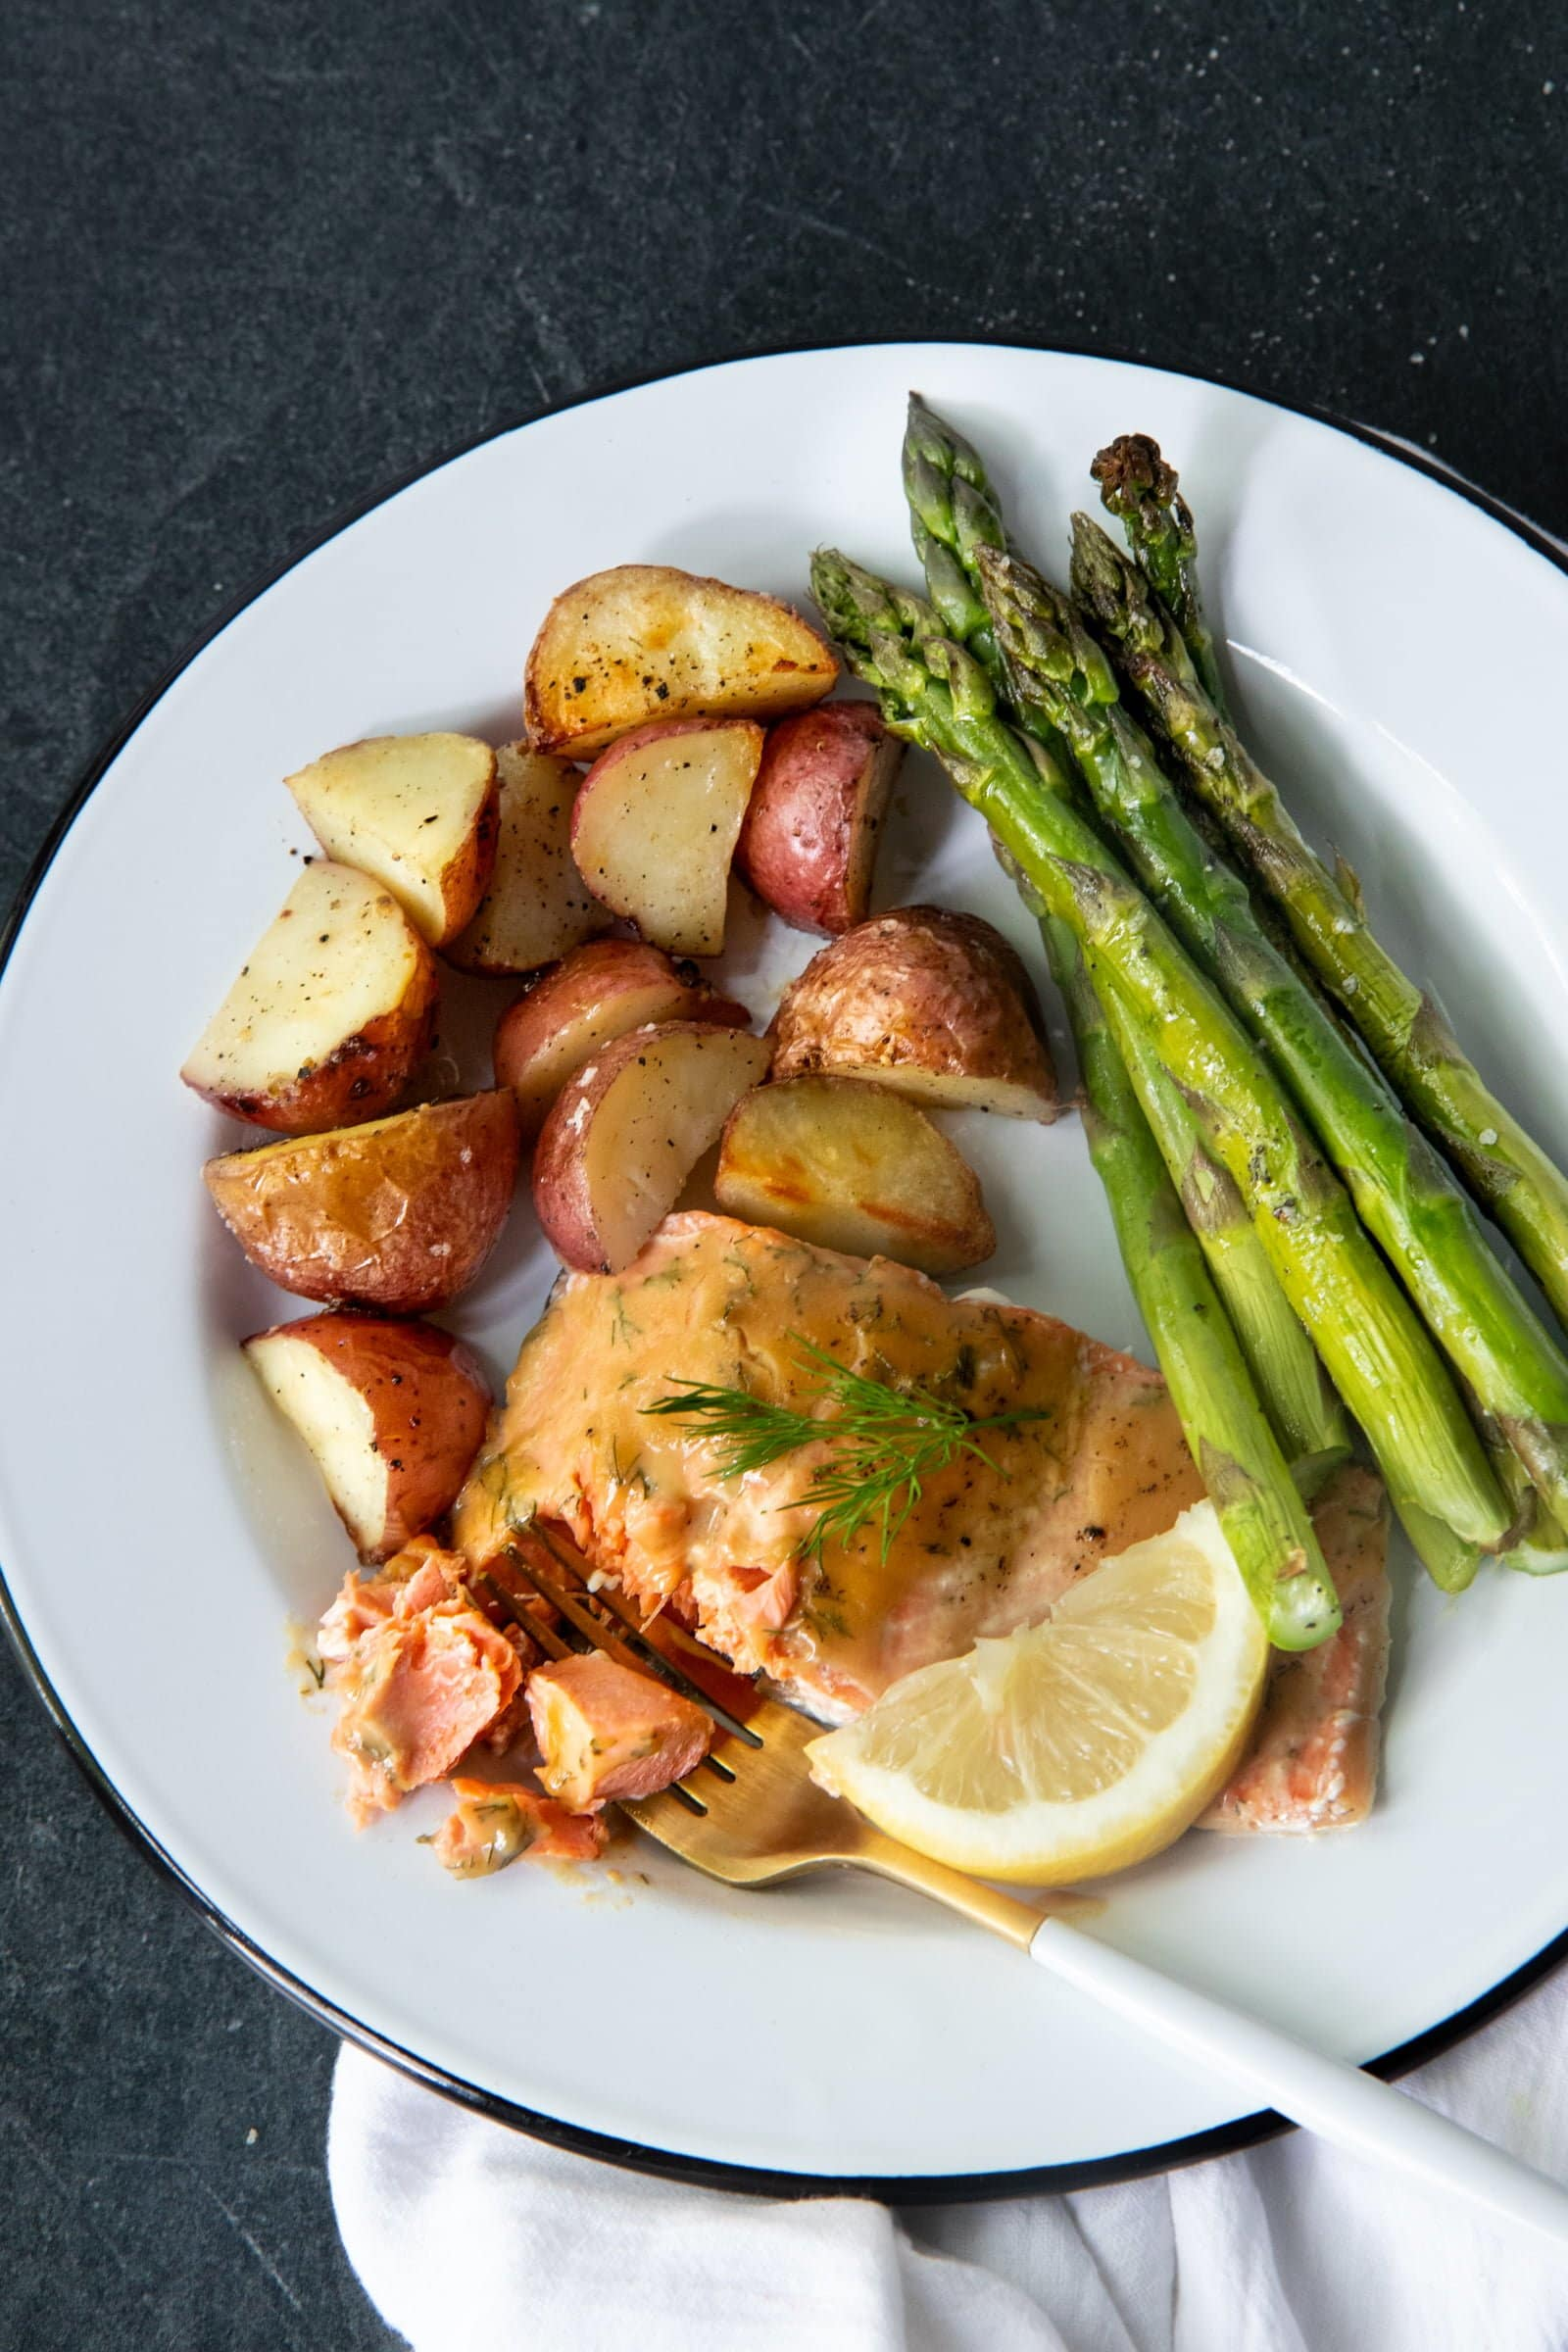 Overhead of roasted maple glazed salmon, asparagus, and potatoes on a white plate with a fork.